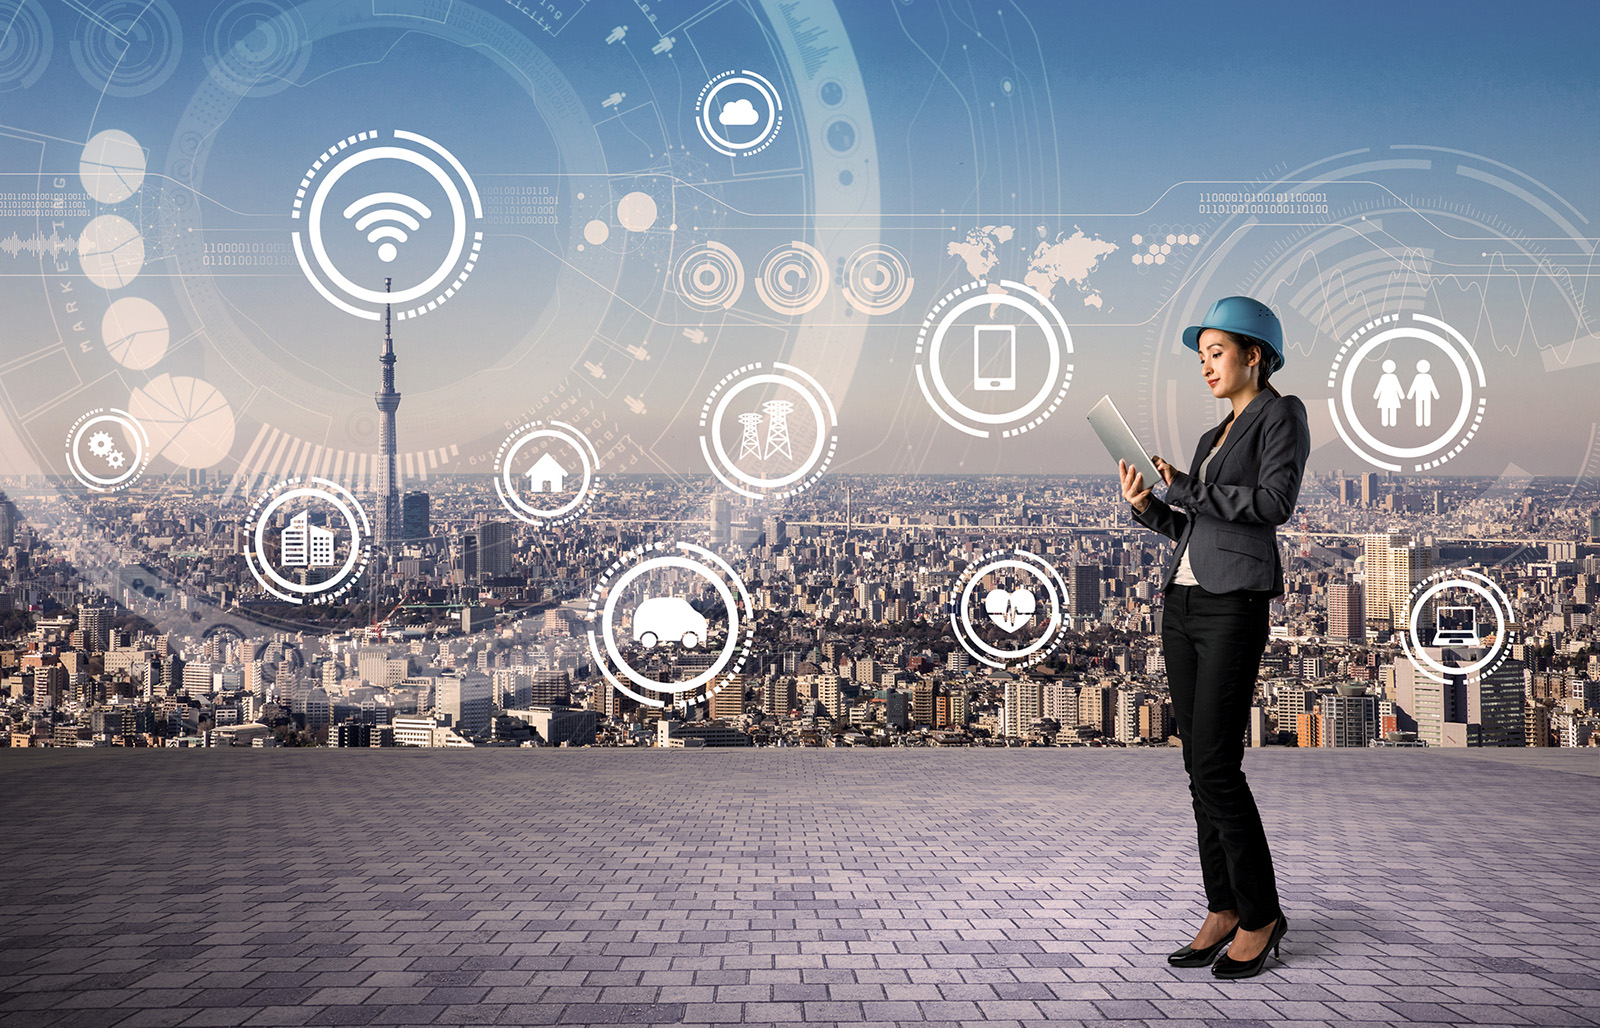 Business woman in a hardhat in front of a cityscape with icons of energy sources